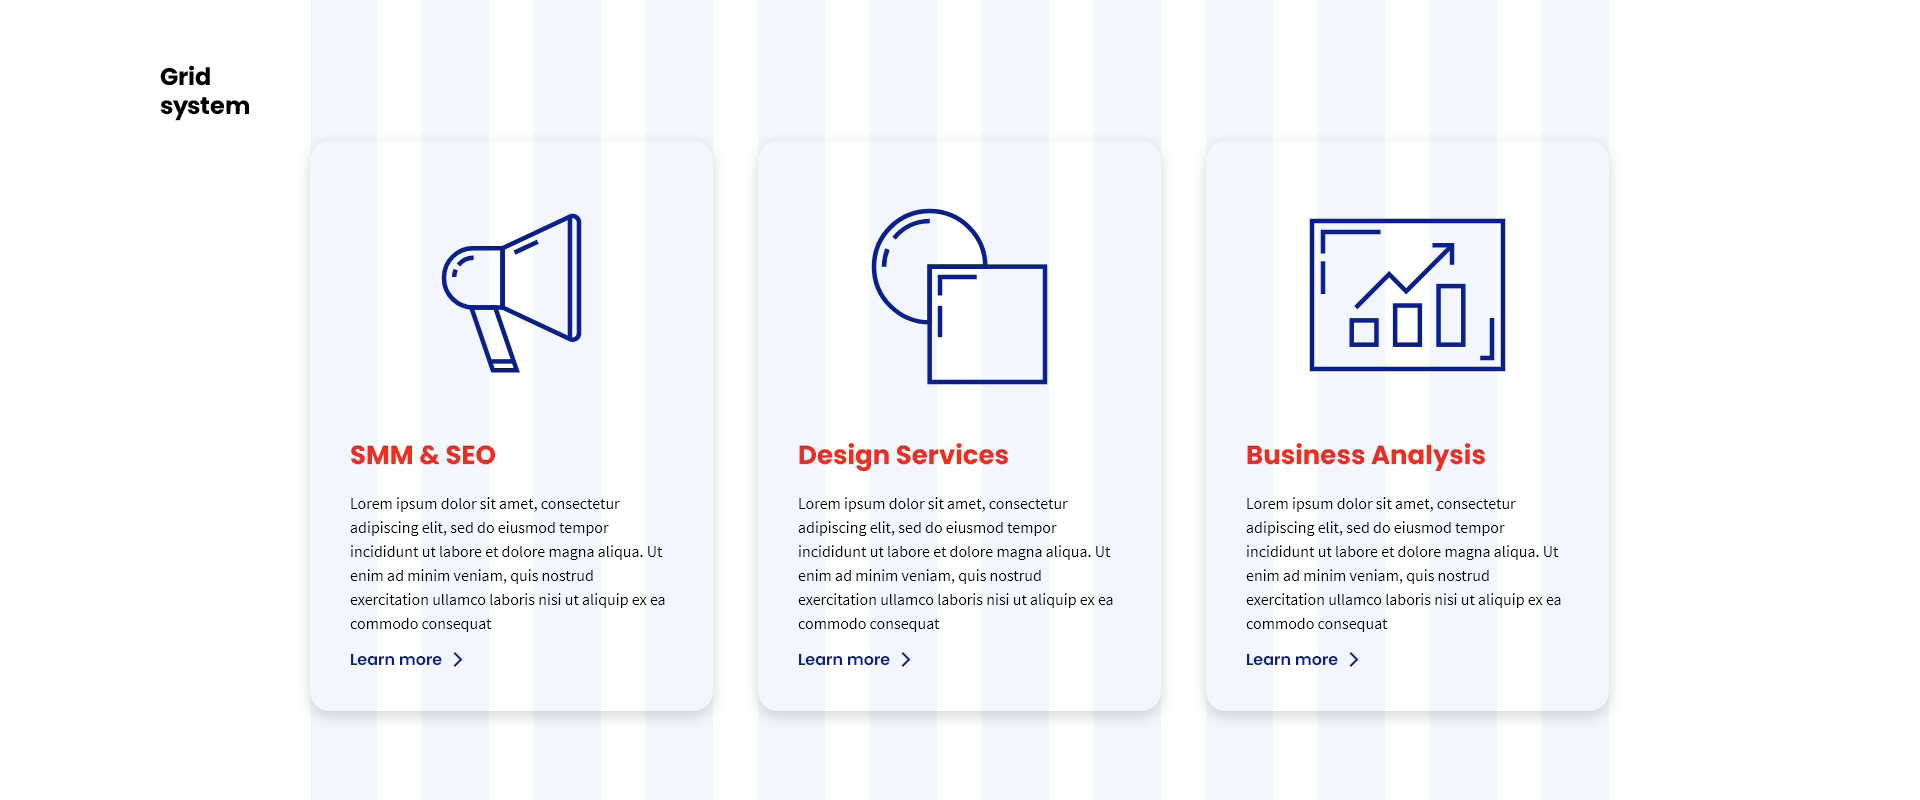 FreeGroup. Software house. Website project. Services page. Grid